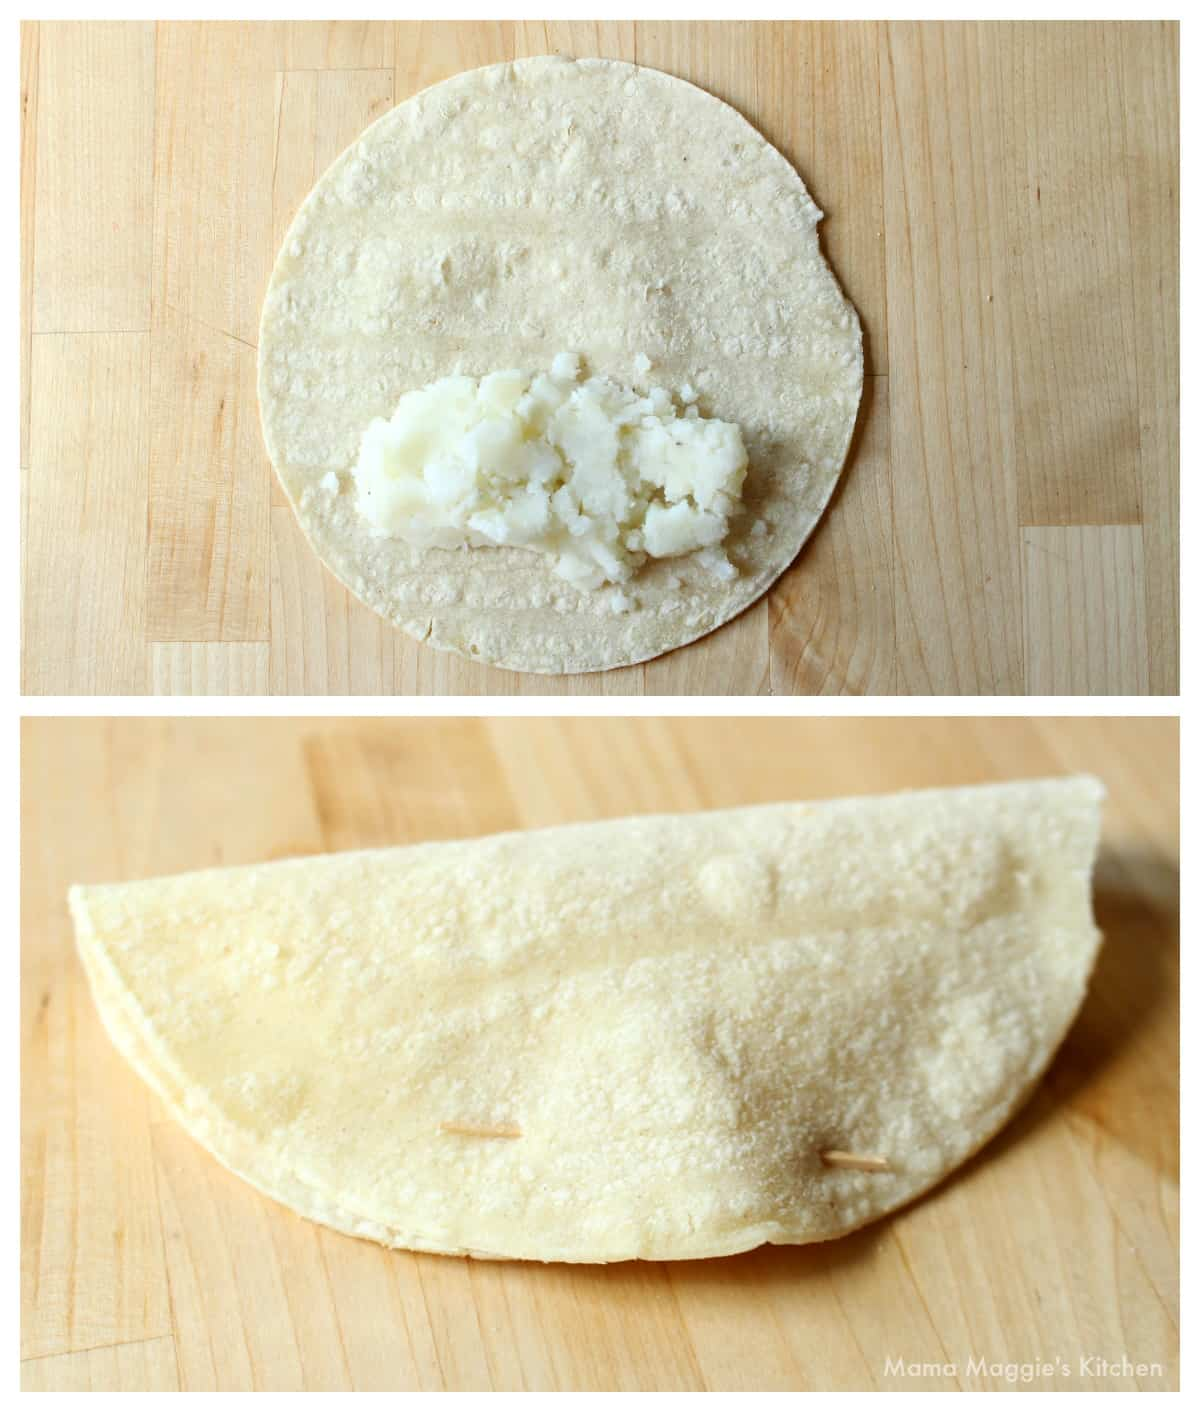 A collage showing how to assemble the tacos dorados.